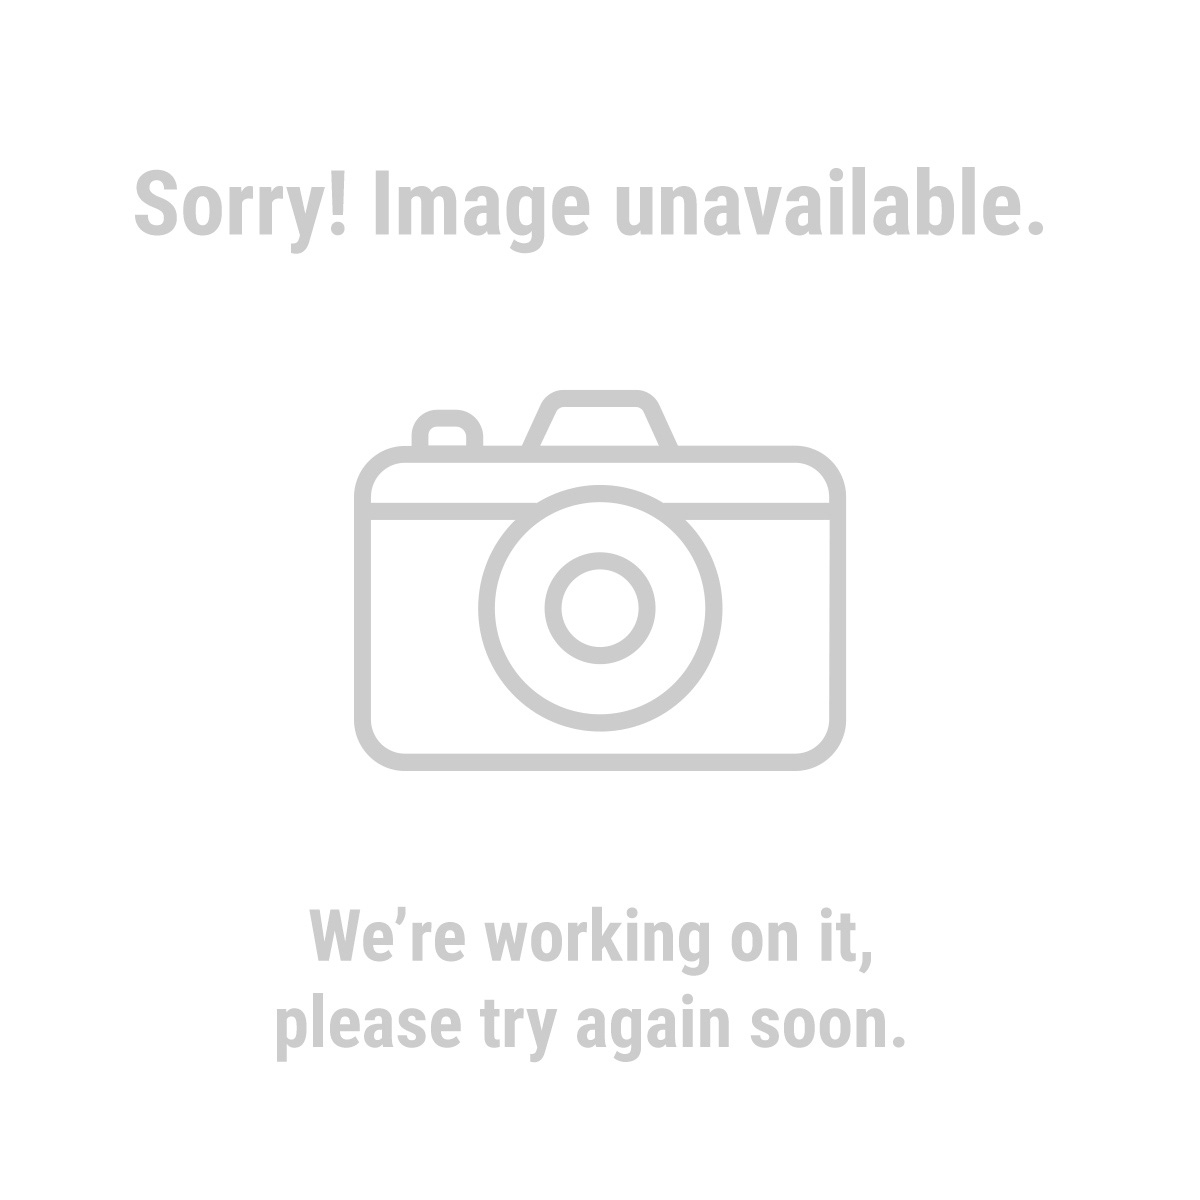 Chicago Electric Welding 98958 Oxygen and Acetylene Welding Kit